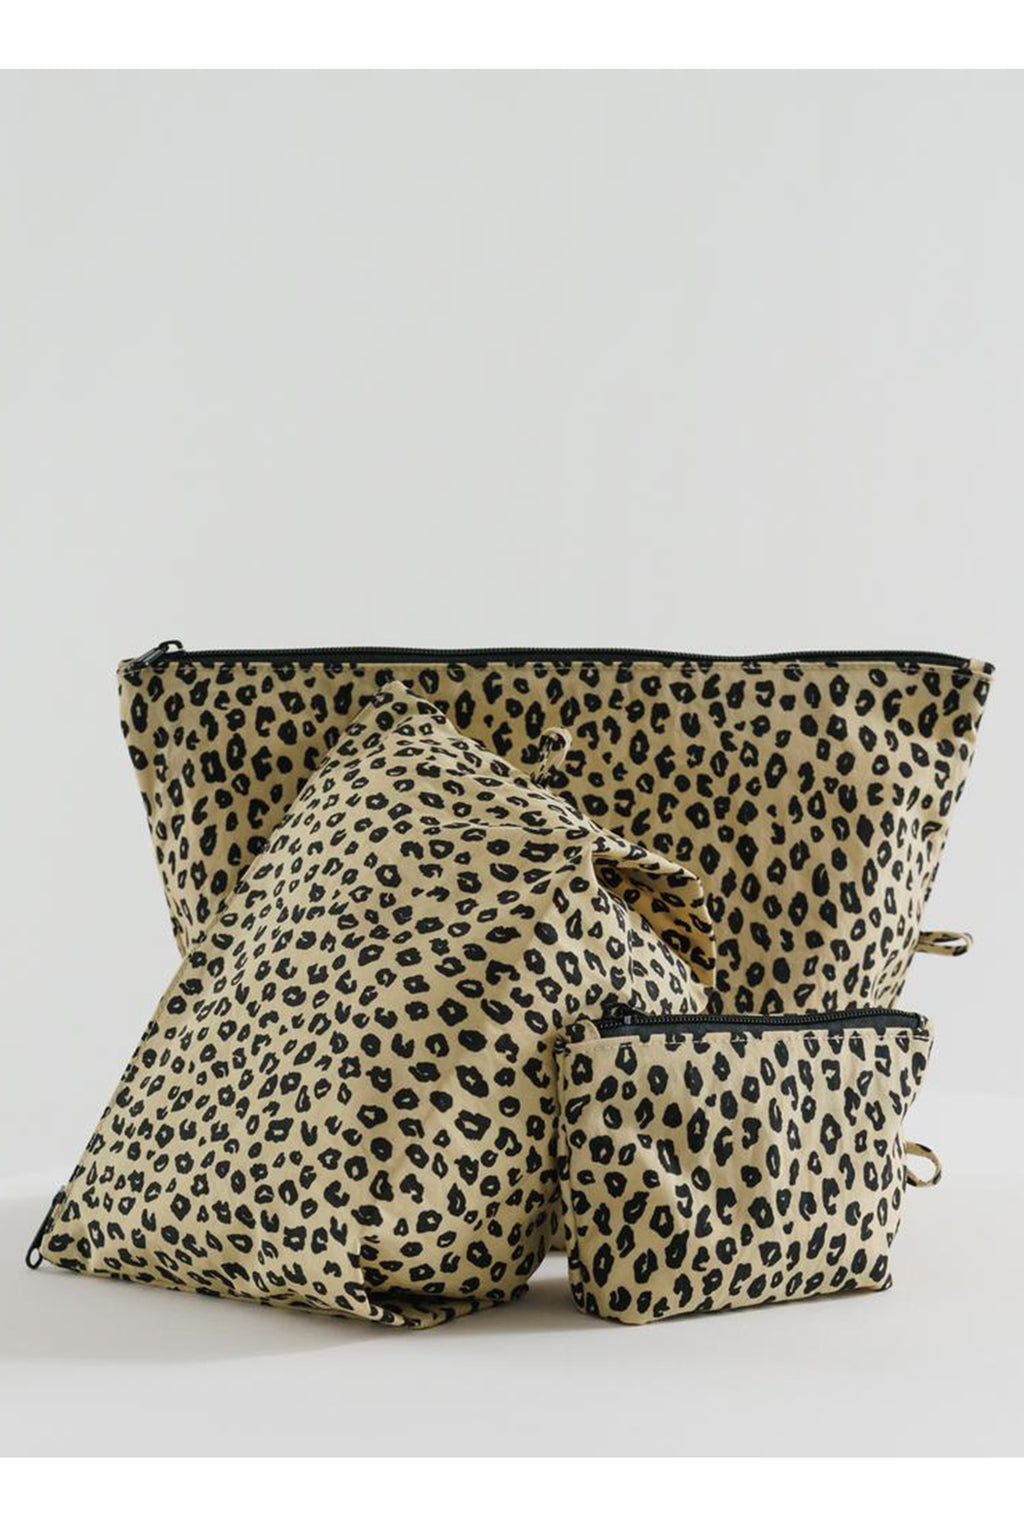 Baggu Go Pouch Honey Leopard Set - The Mercantile London